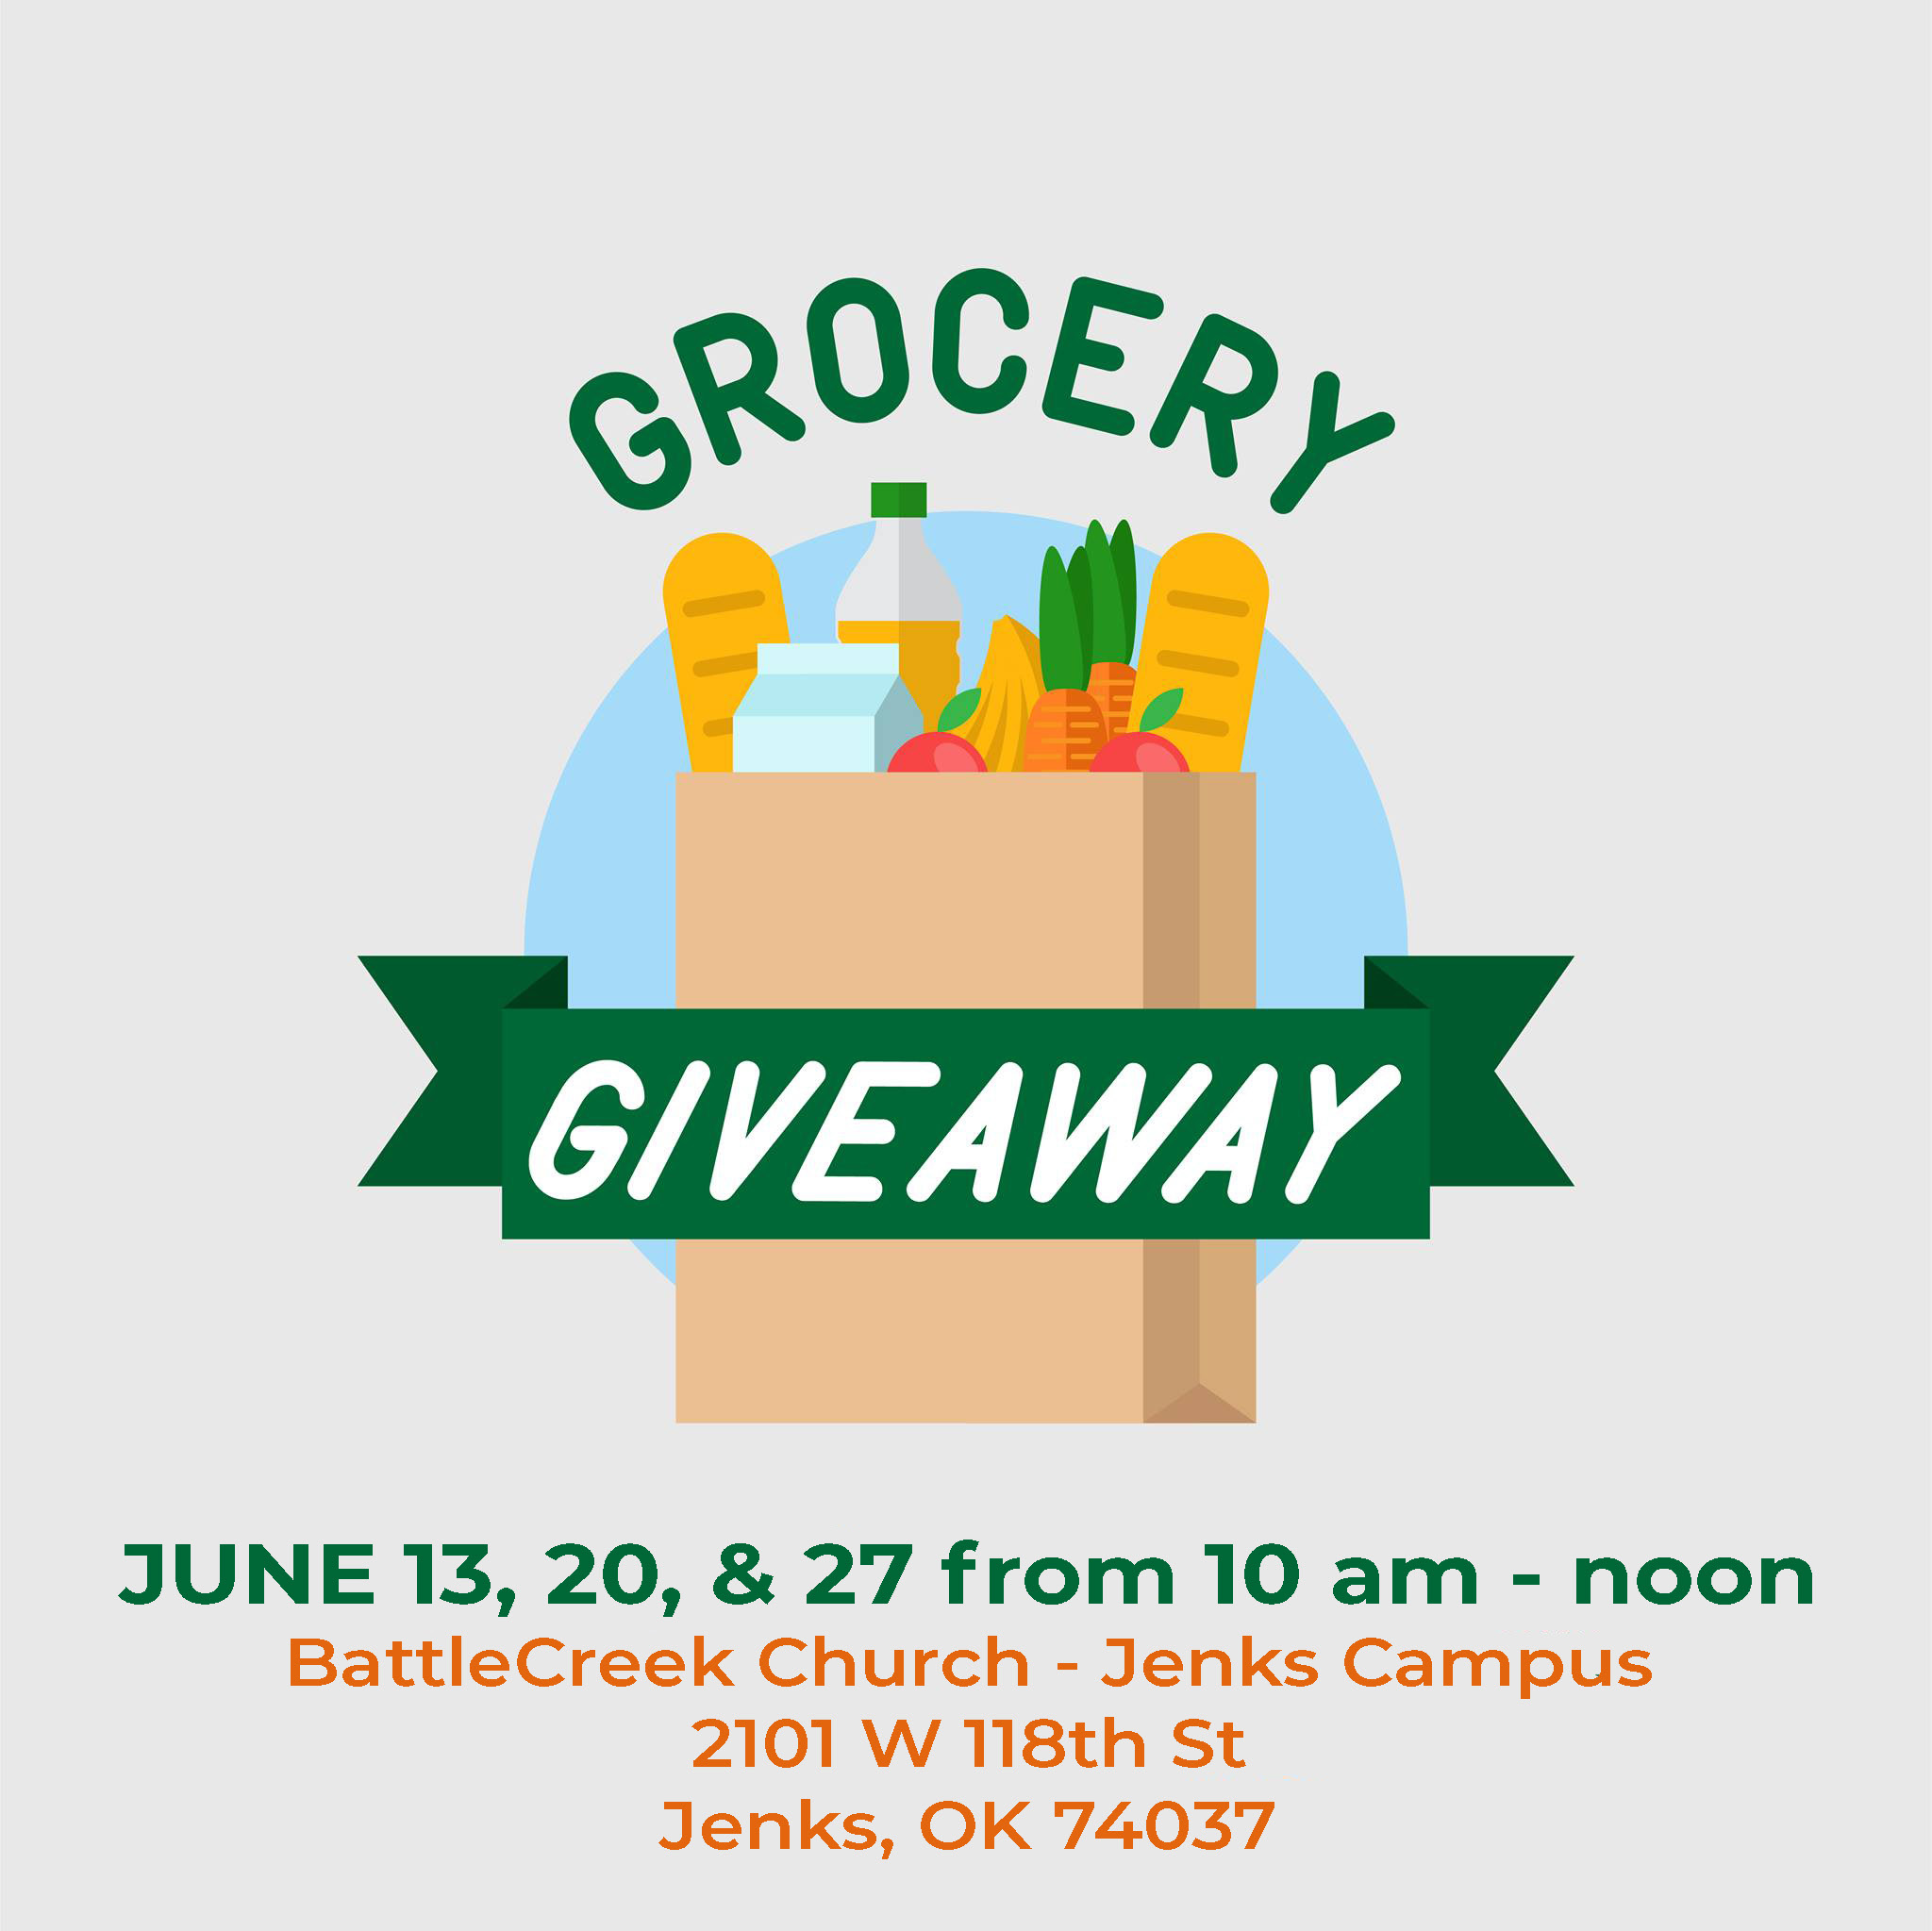 A graphic for the BattleCreek Church Grocery Giveaway.